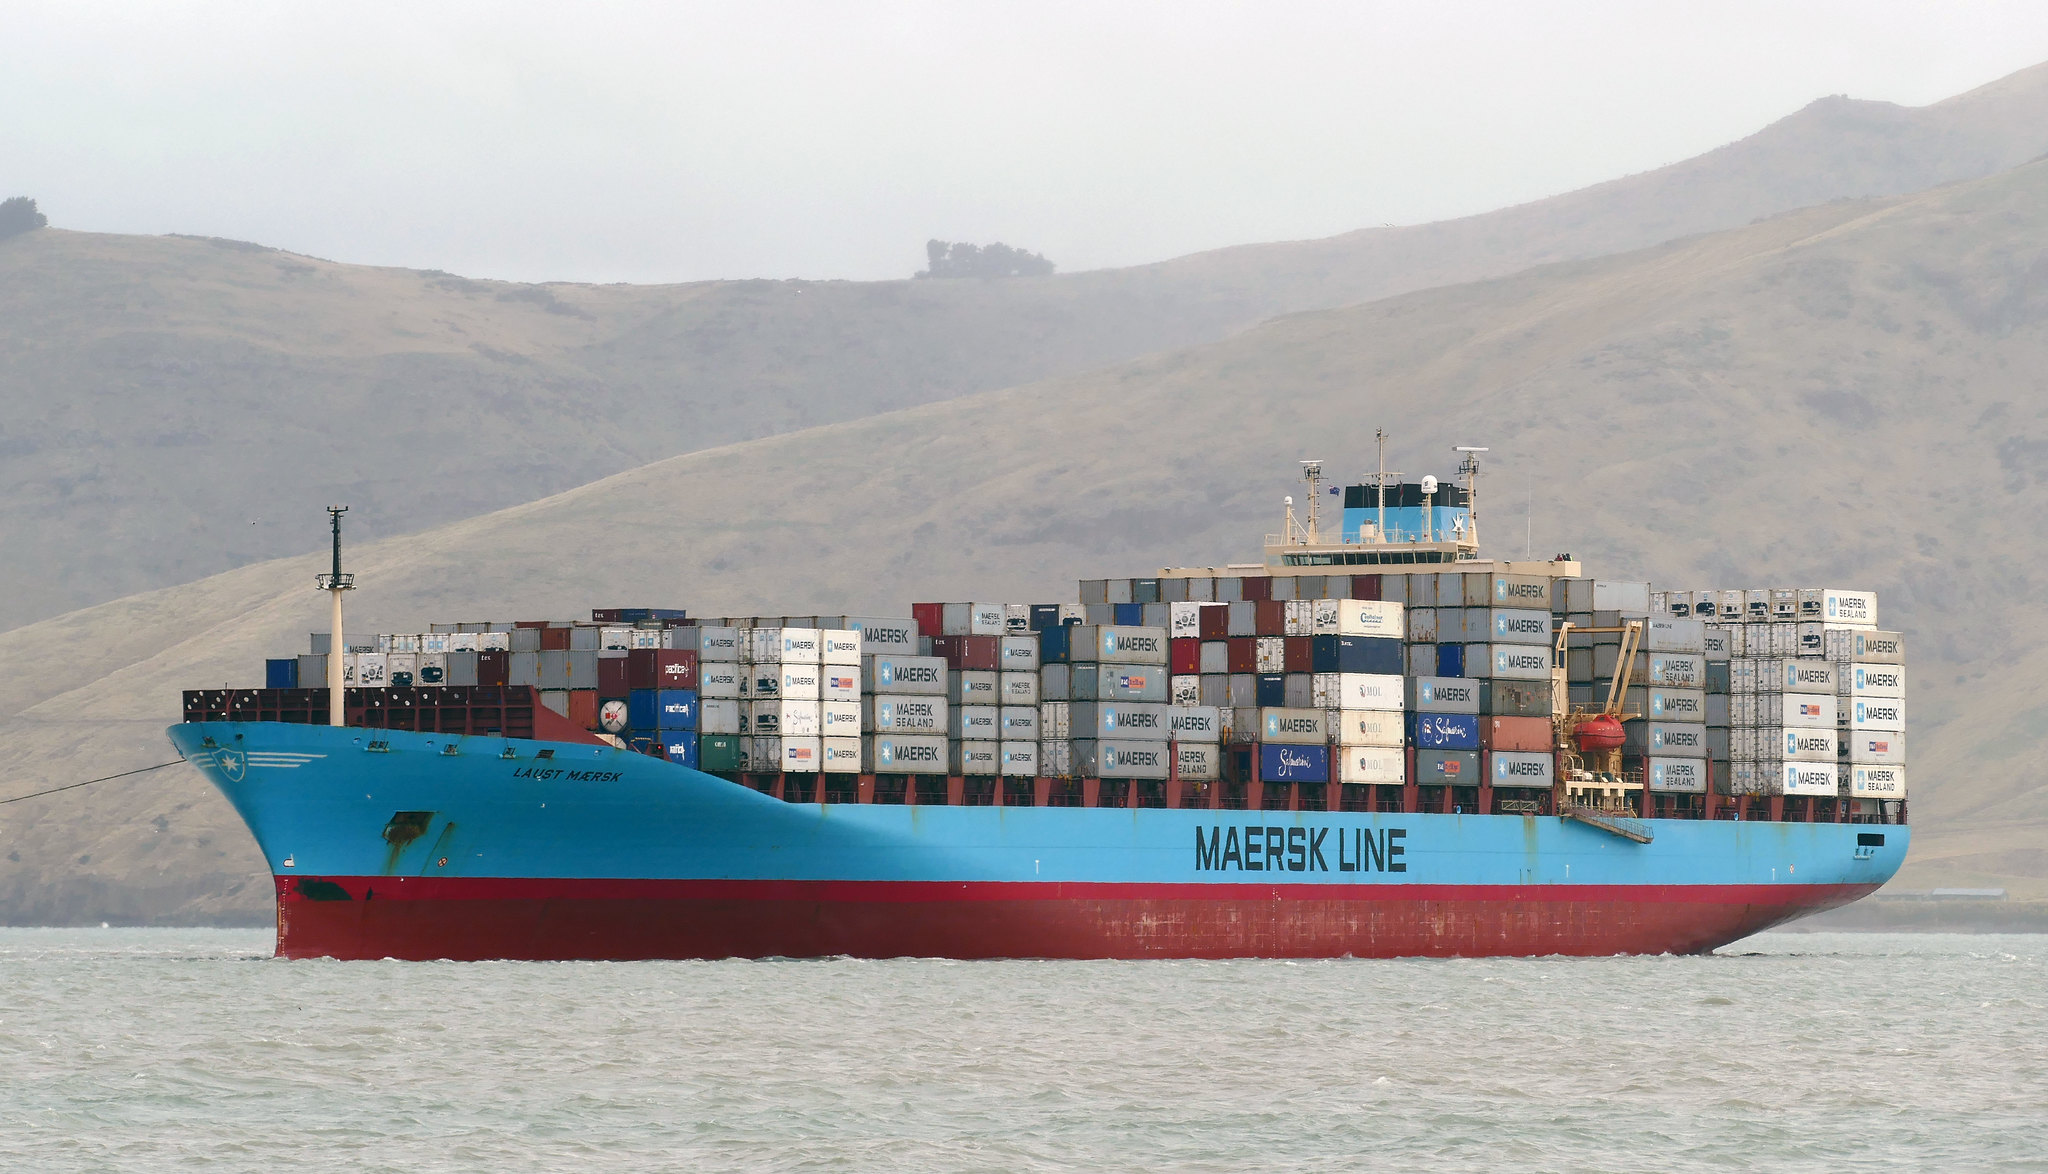 <p>Maersk, the world\'s largest container ship company, pledged carbon neutrality by 2050. Photo by Bernard Spragg/Flickr</p>